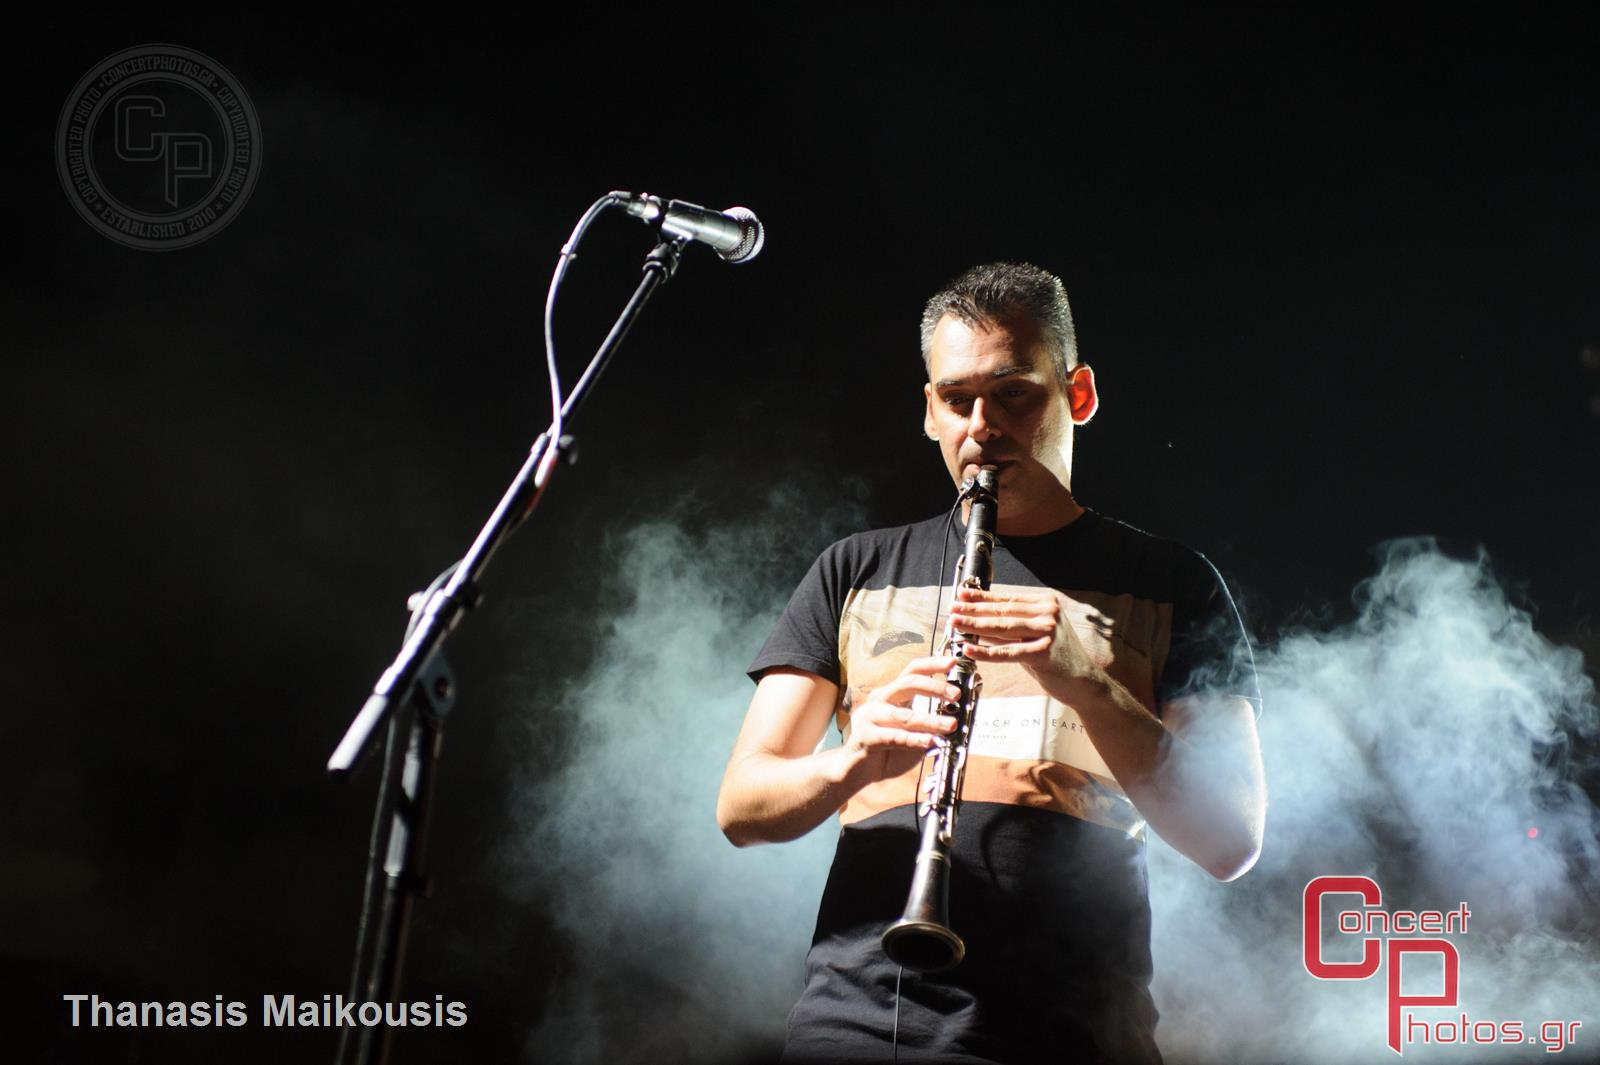 VIC-VIC-Technopolis photographer: Thanasis Maikousis - concertphotos_20150925_20_39_12